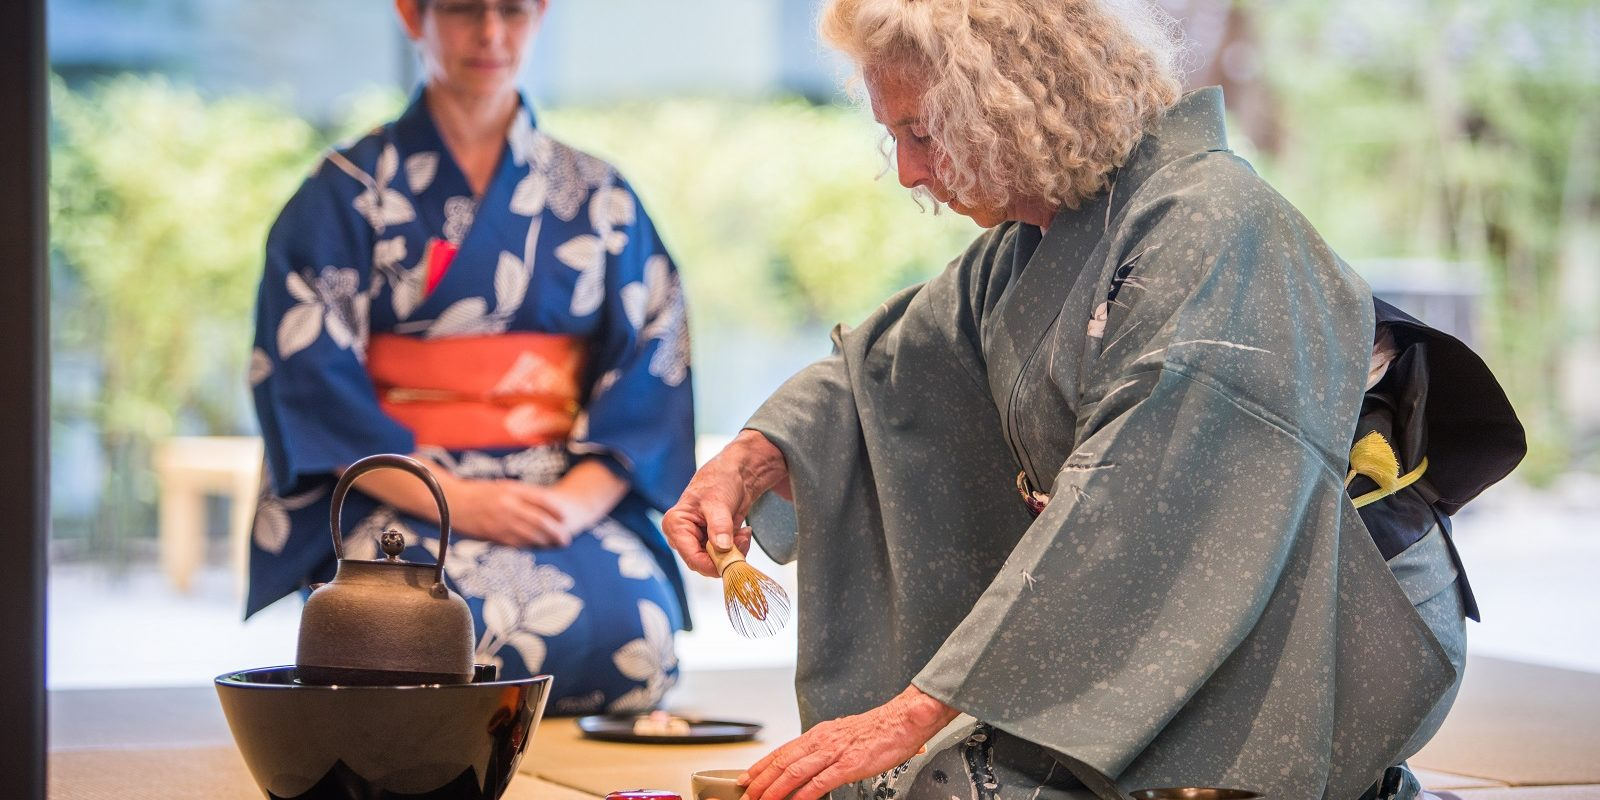 Tea Ceremony - 060717 - image-011